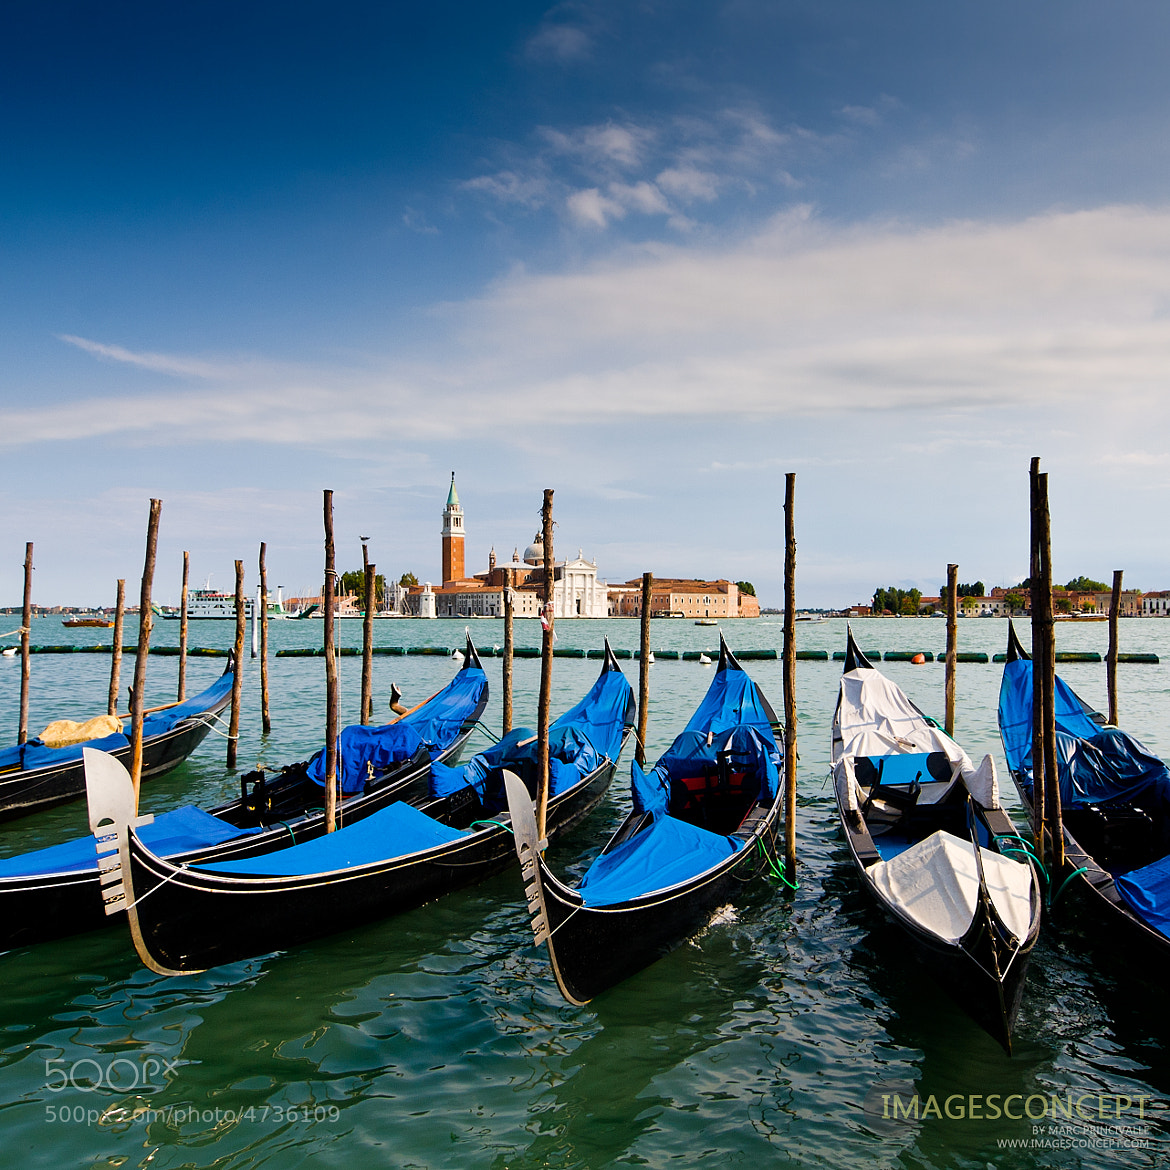 Photograph Venice by Marc Princivalle on 500px